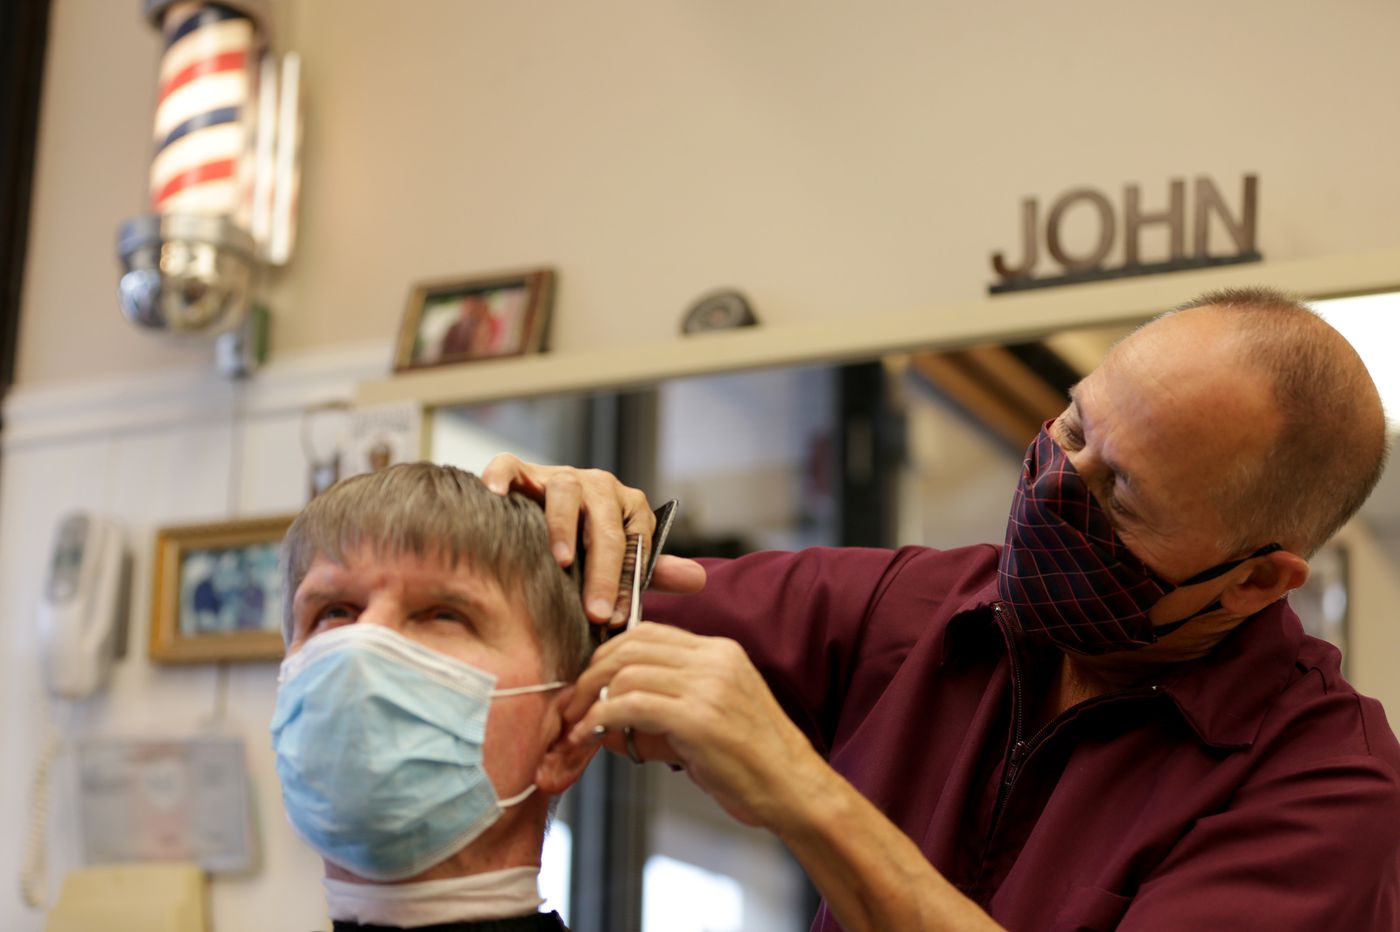 Popular Wynnewood barber cuts his career short due to COVID-19